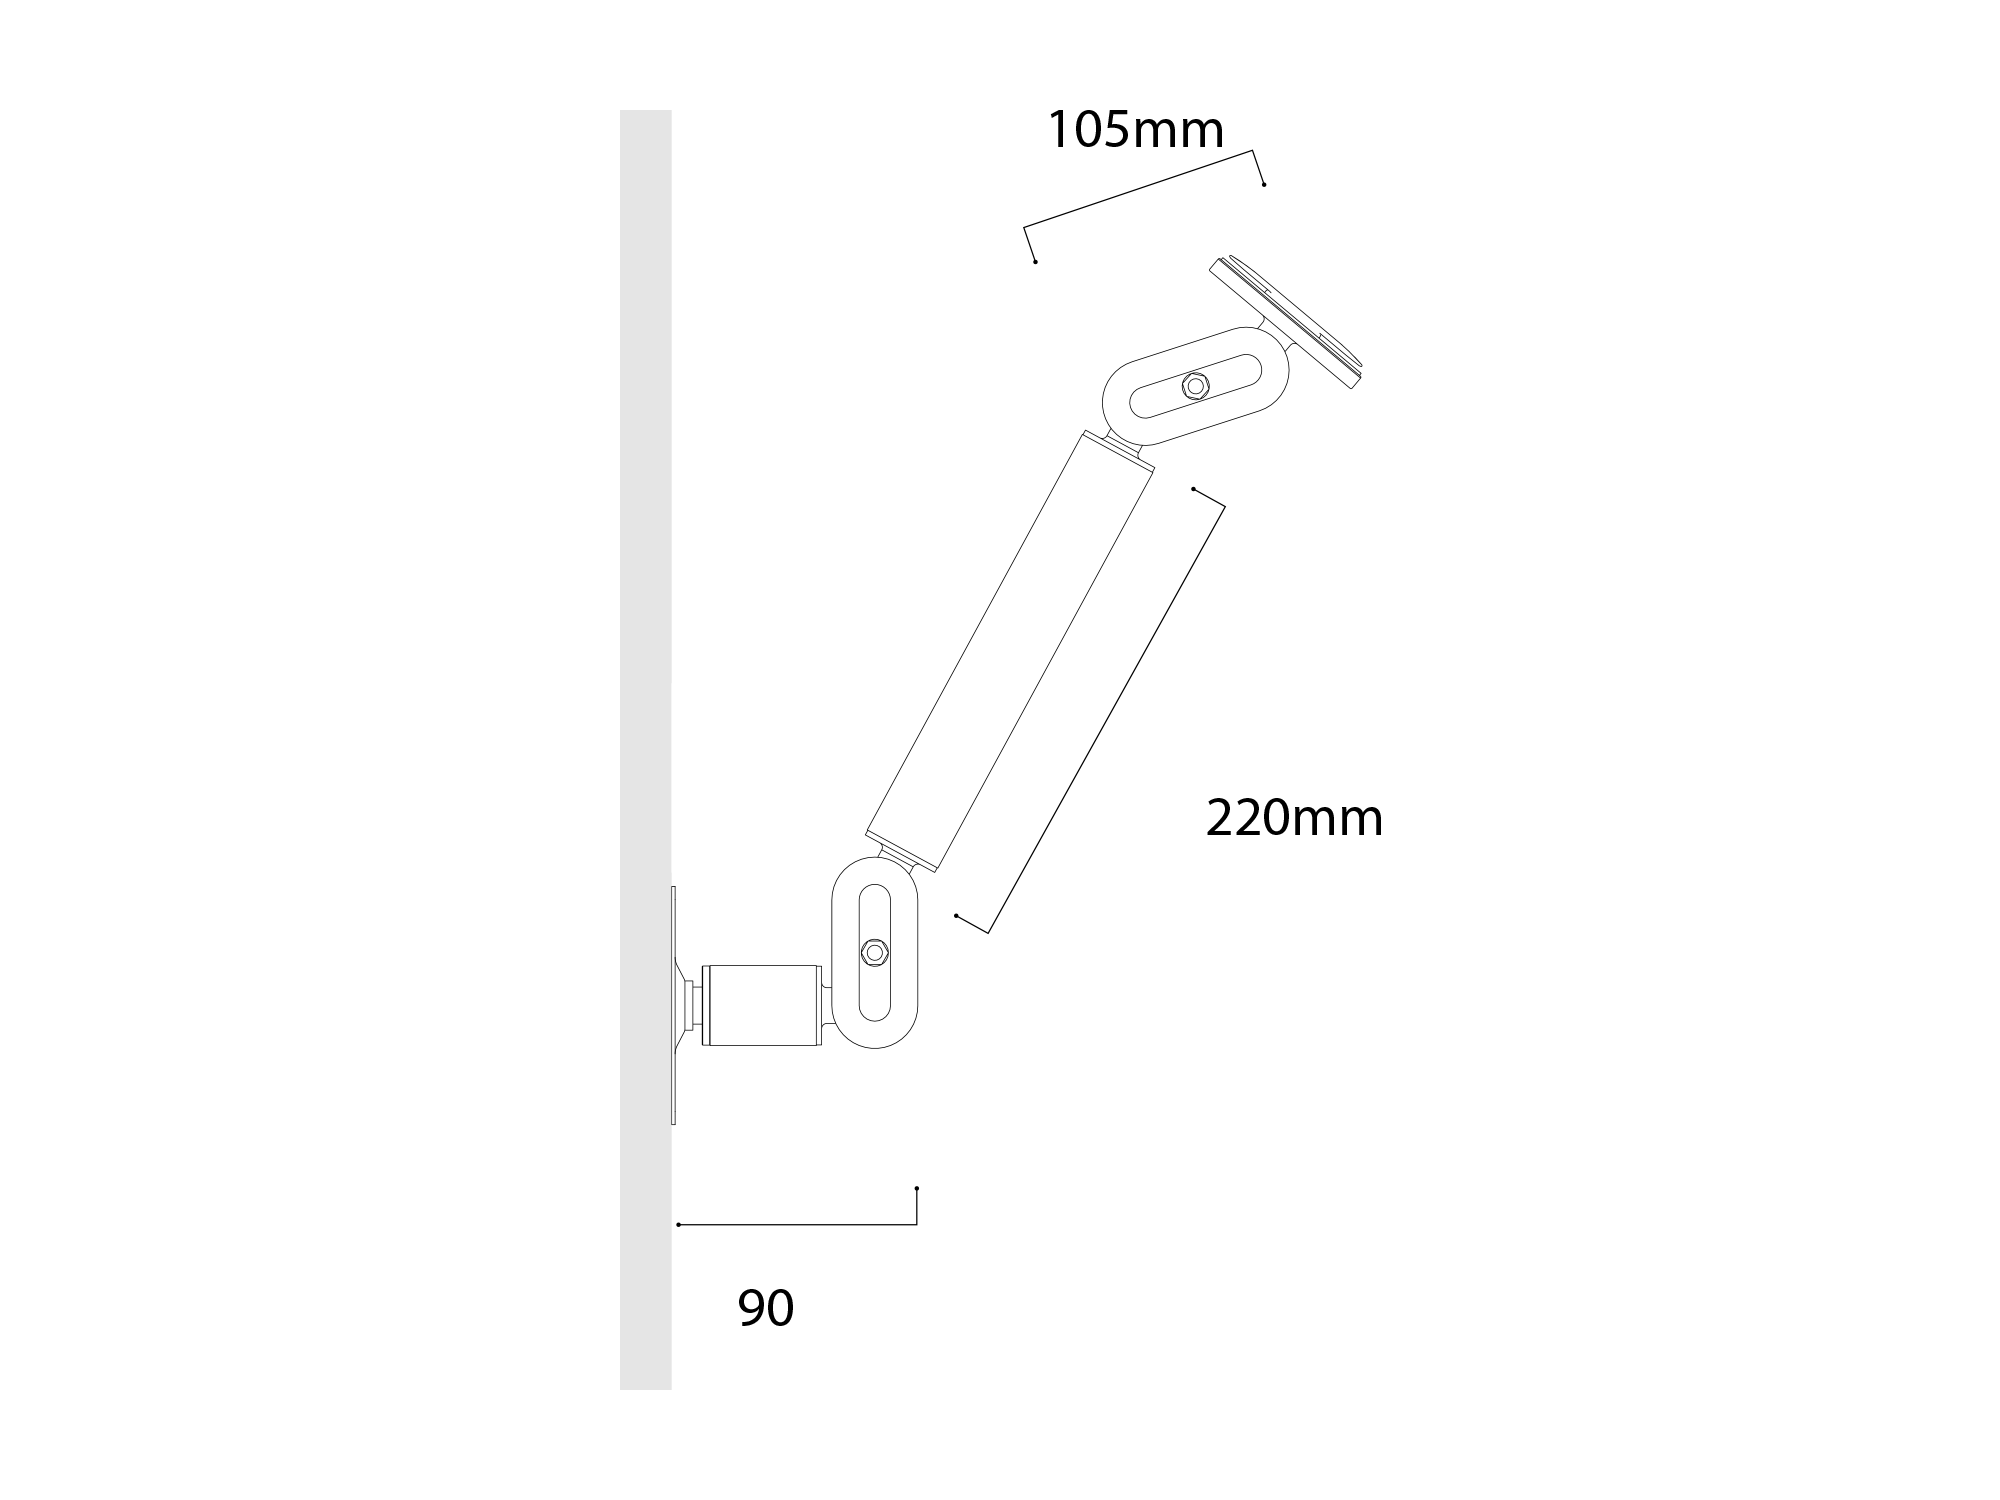 Connect Arm Dimensions Wall